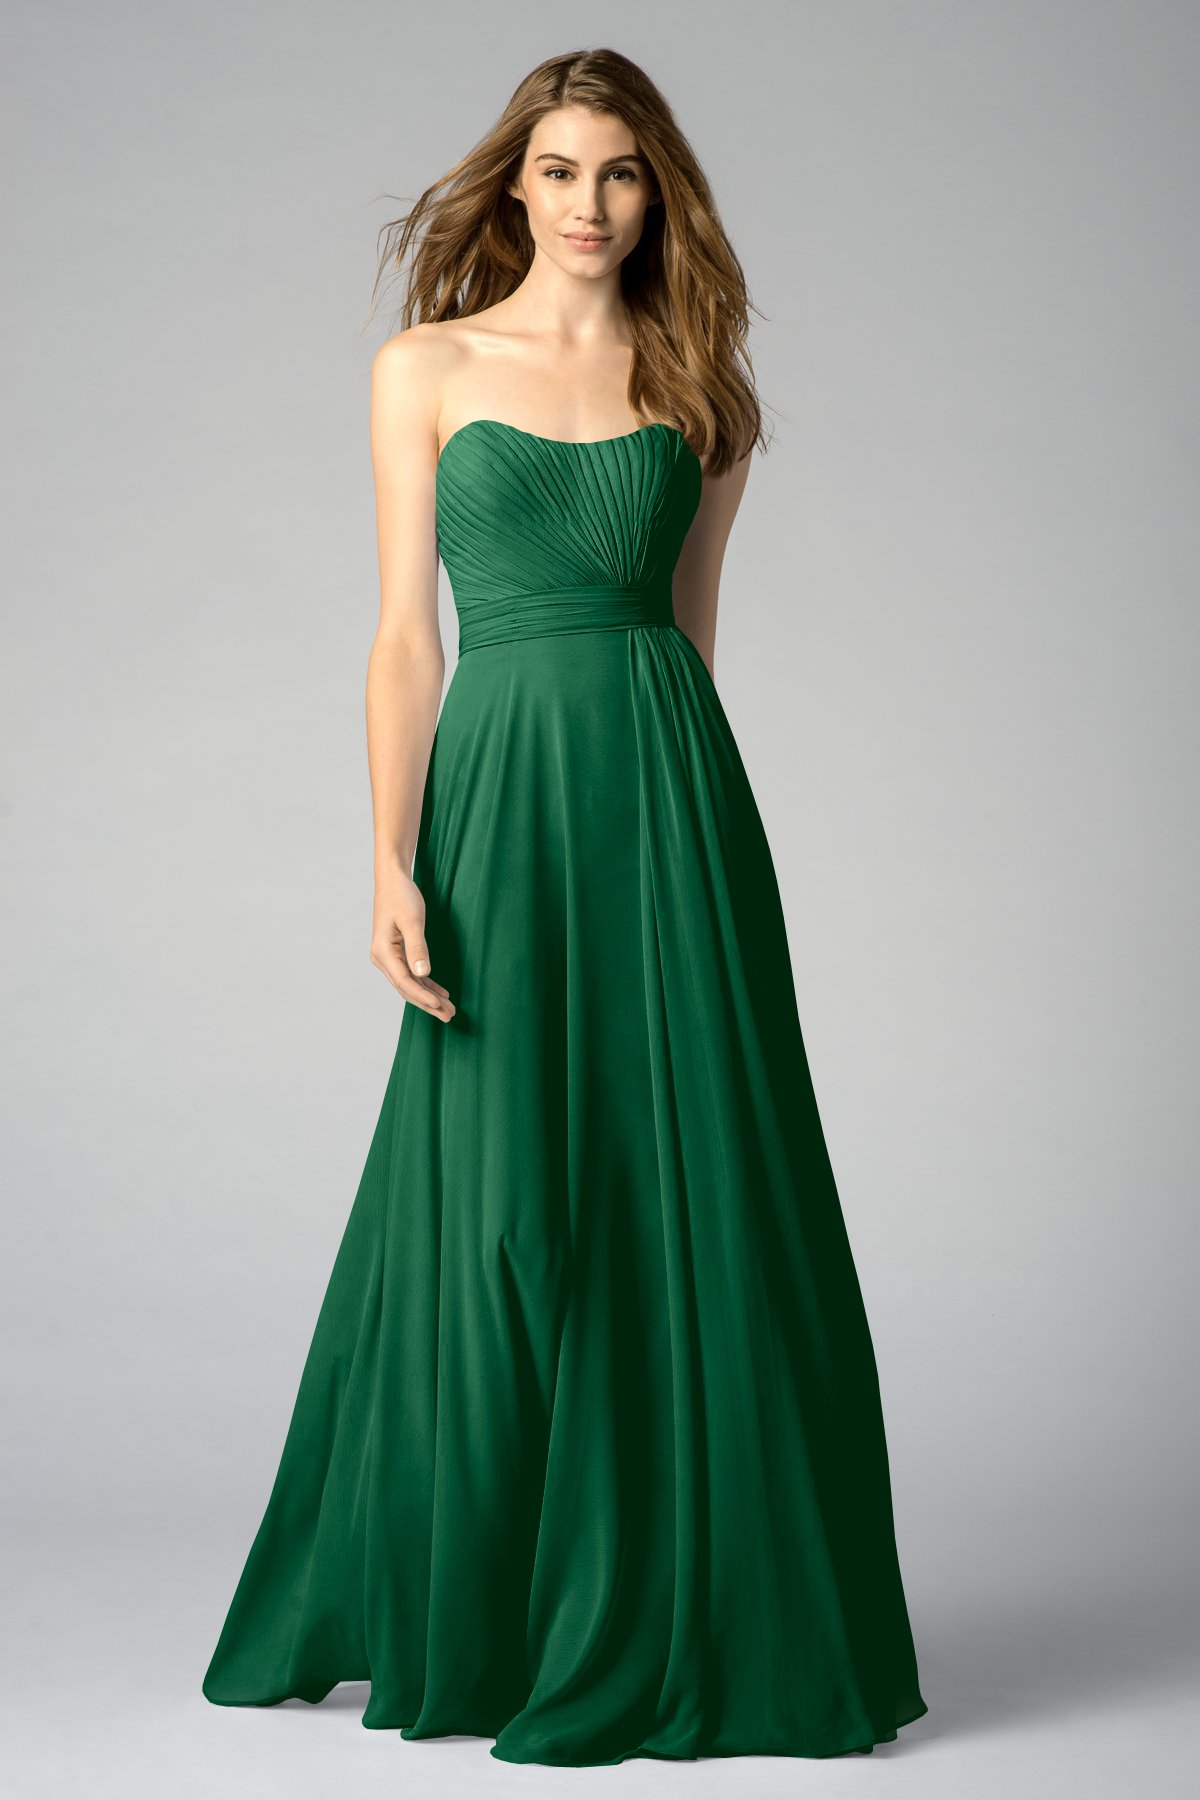 Green bridesmaid dresses uk high street